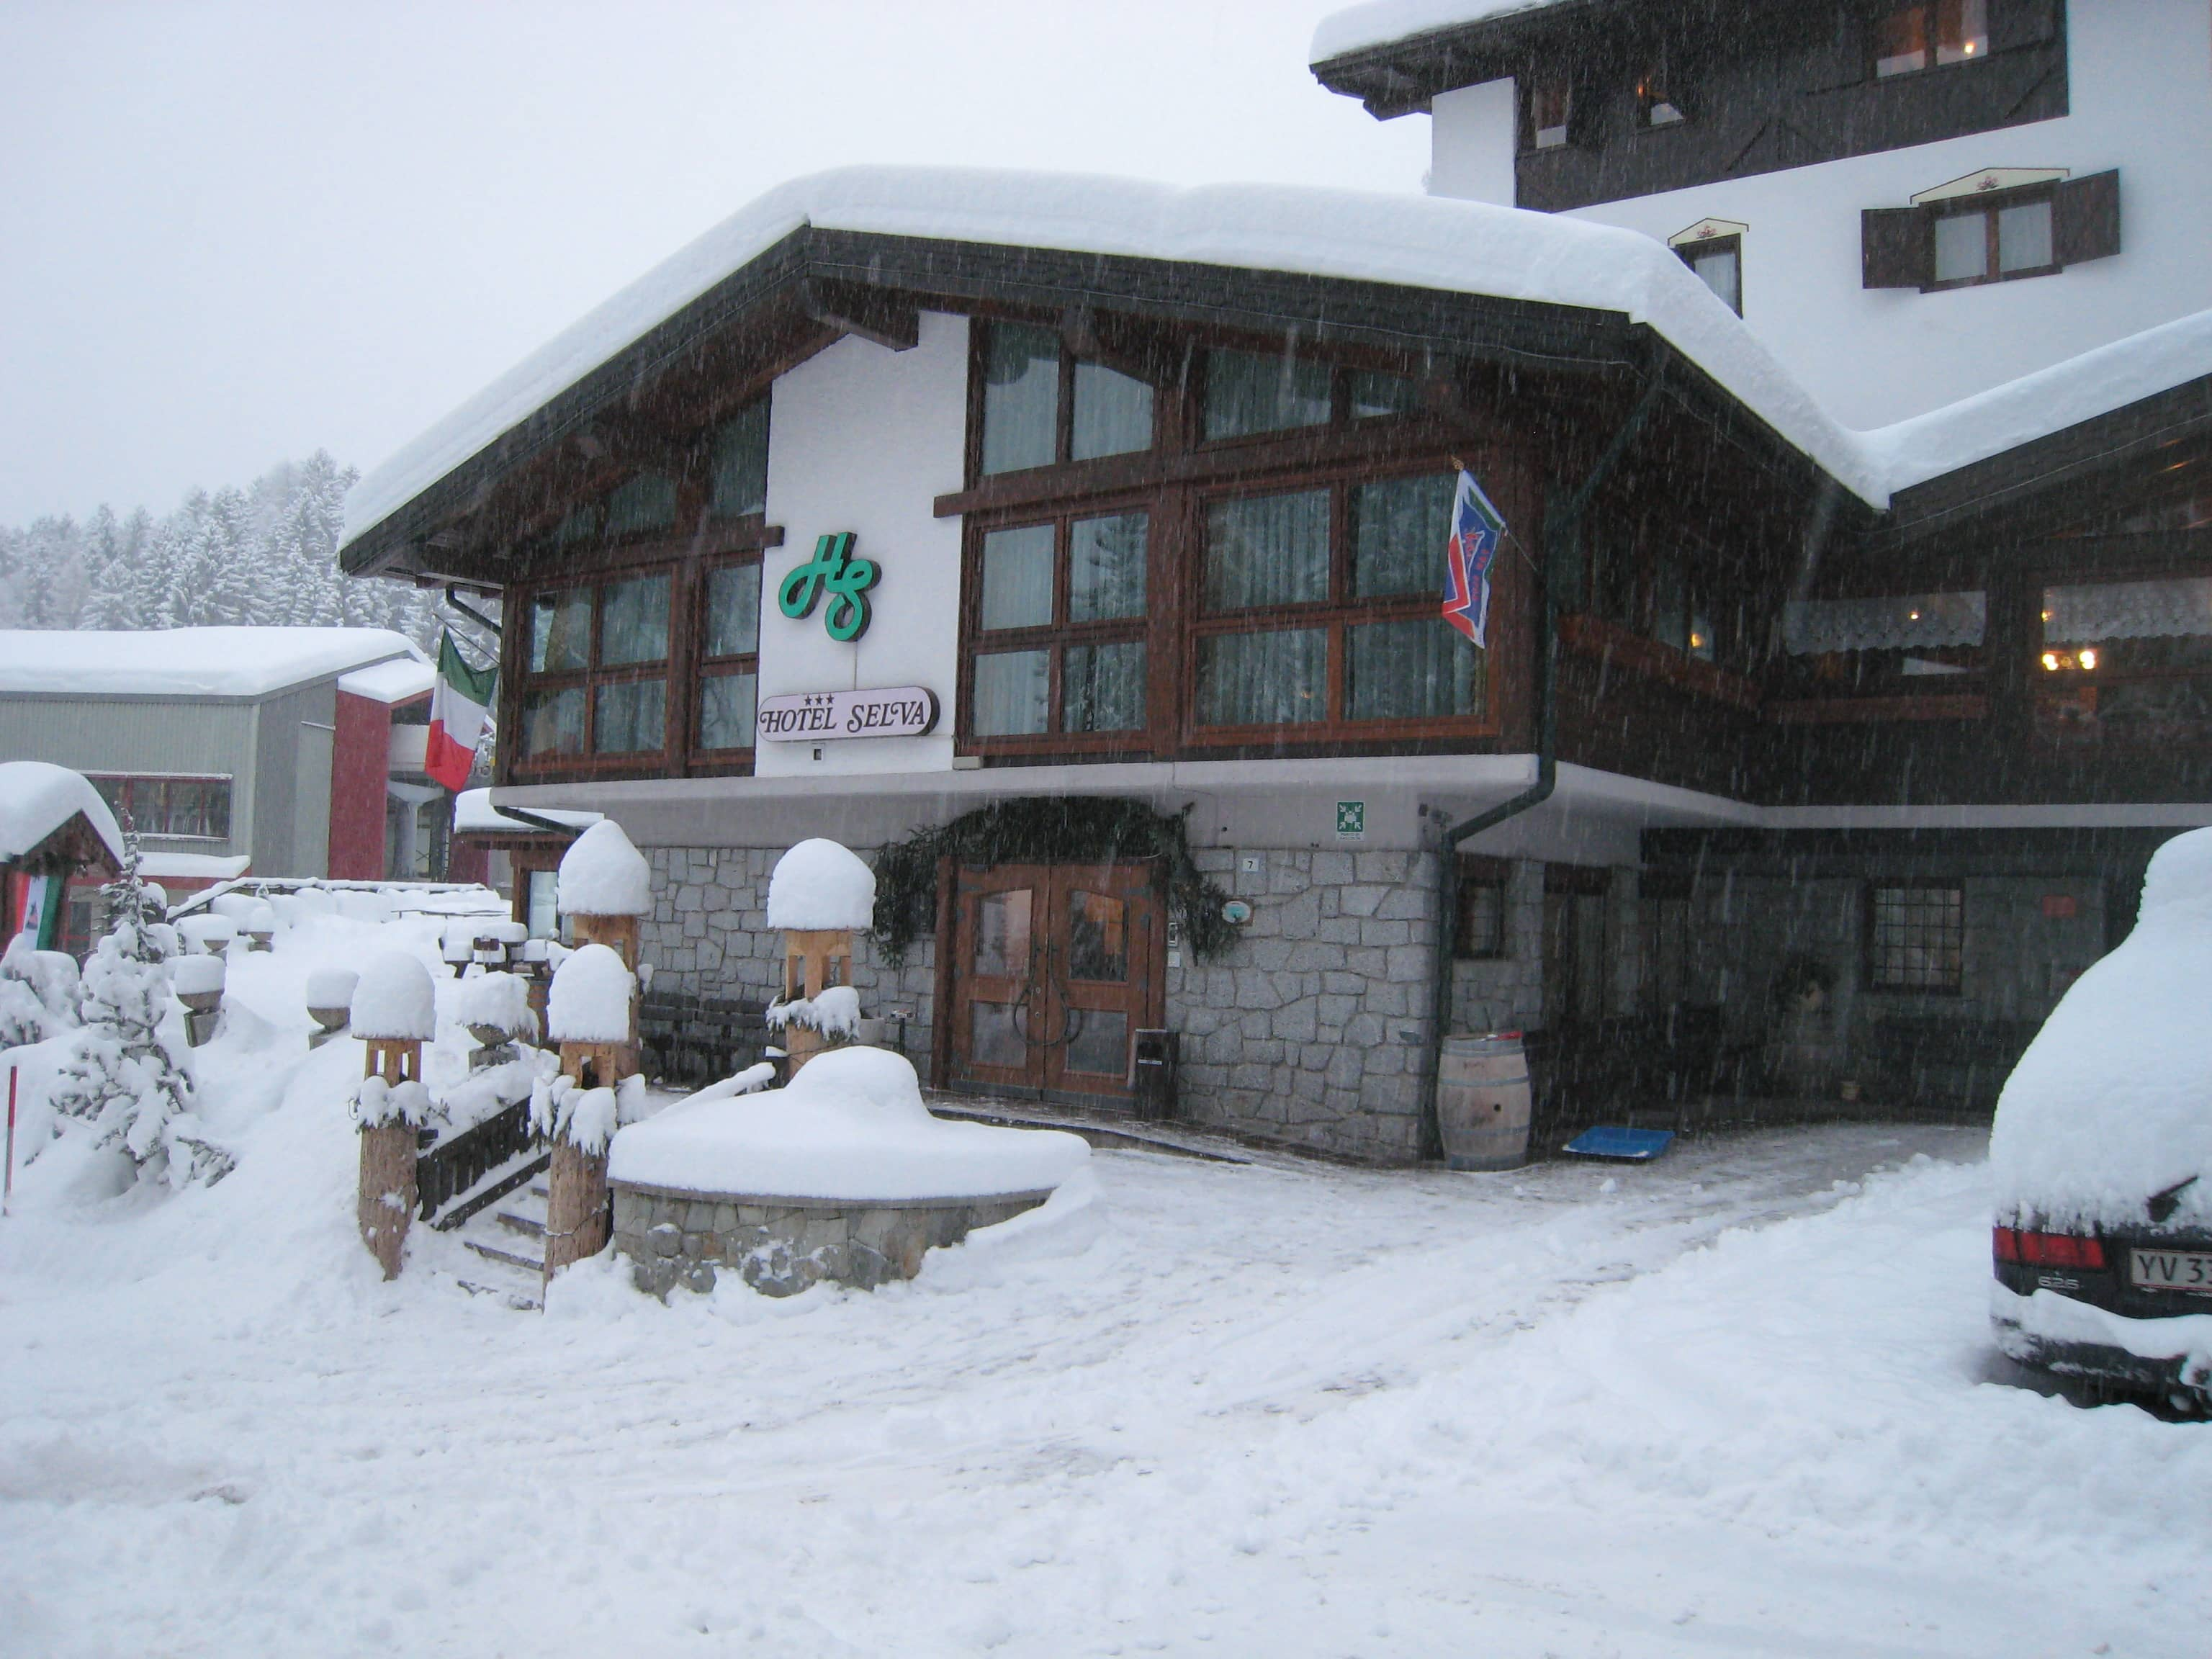 Val di Sole skipass included: Hotel Selva 3*** HB 2